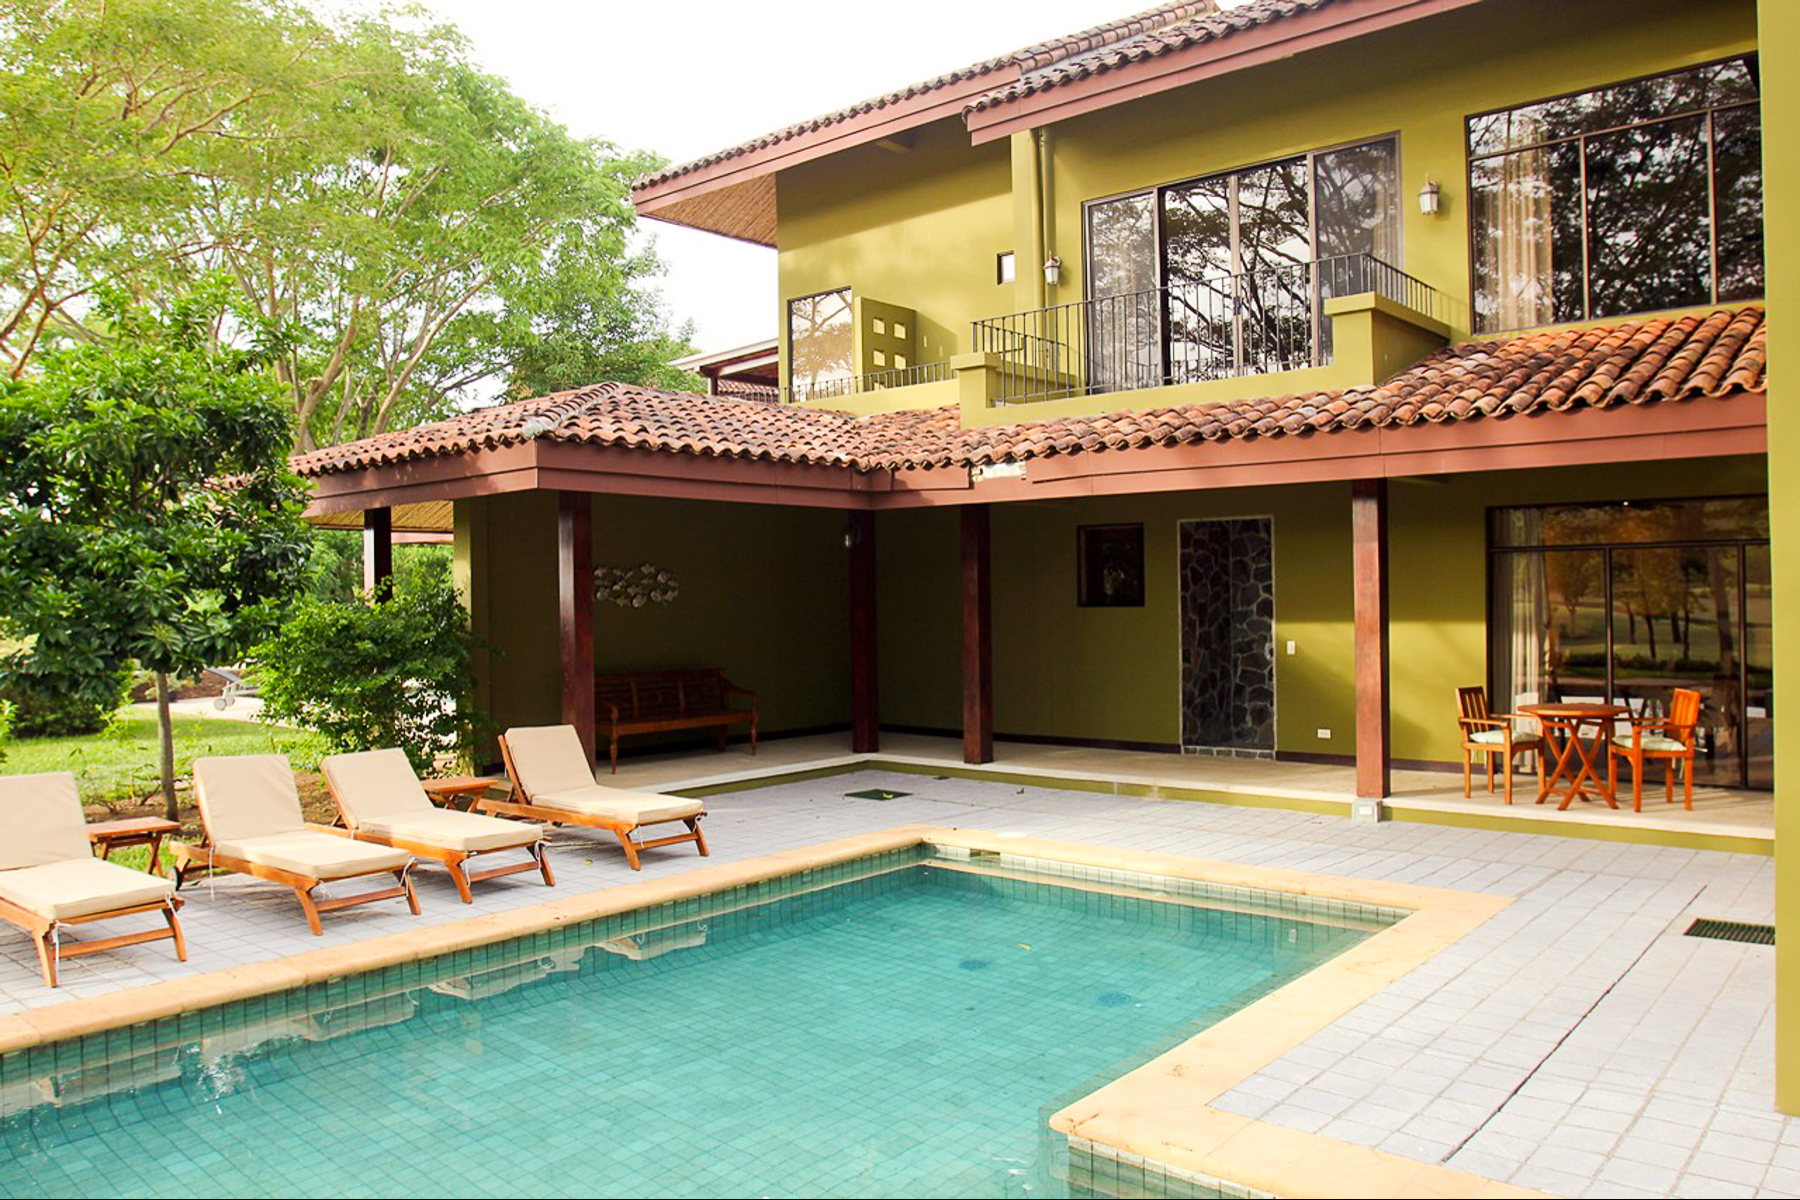 Other Residential for Sale at Villa Carao 6 PRICE REDUCED Reserva Conchal, Guanacaste 50308 Costa Rica